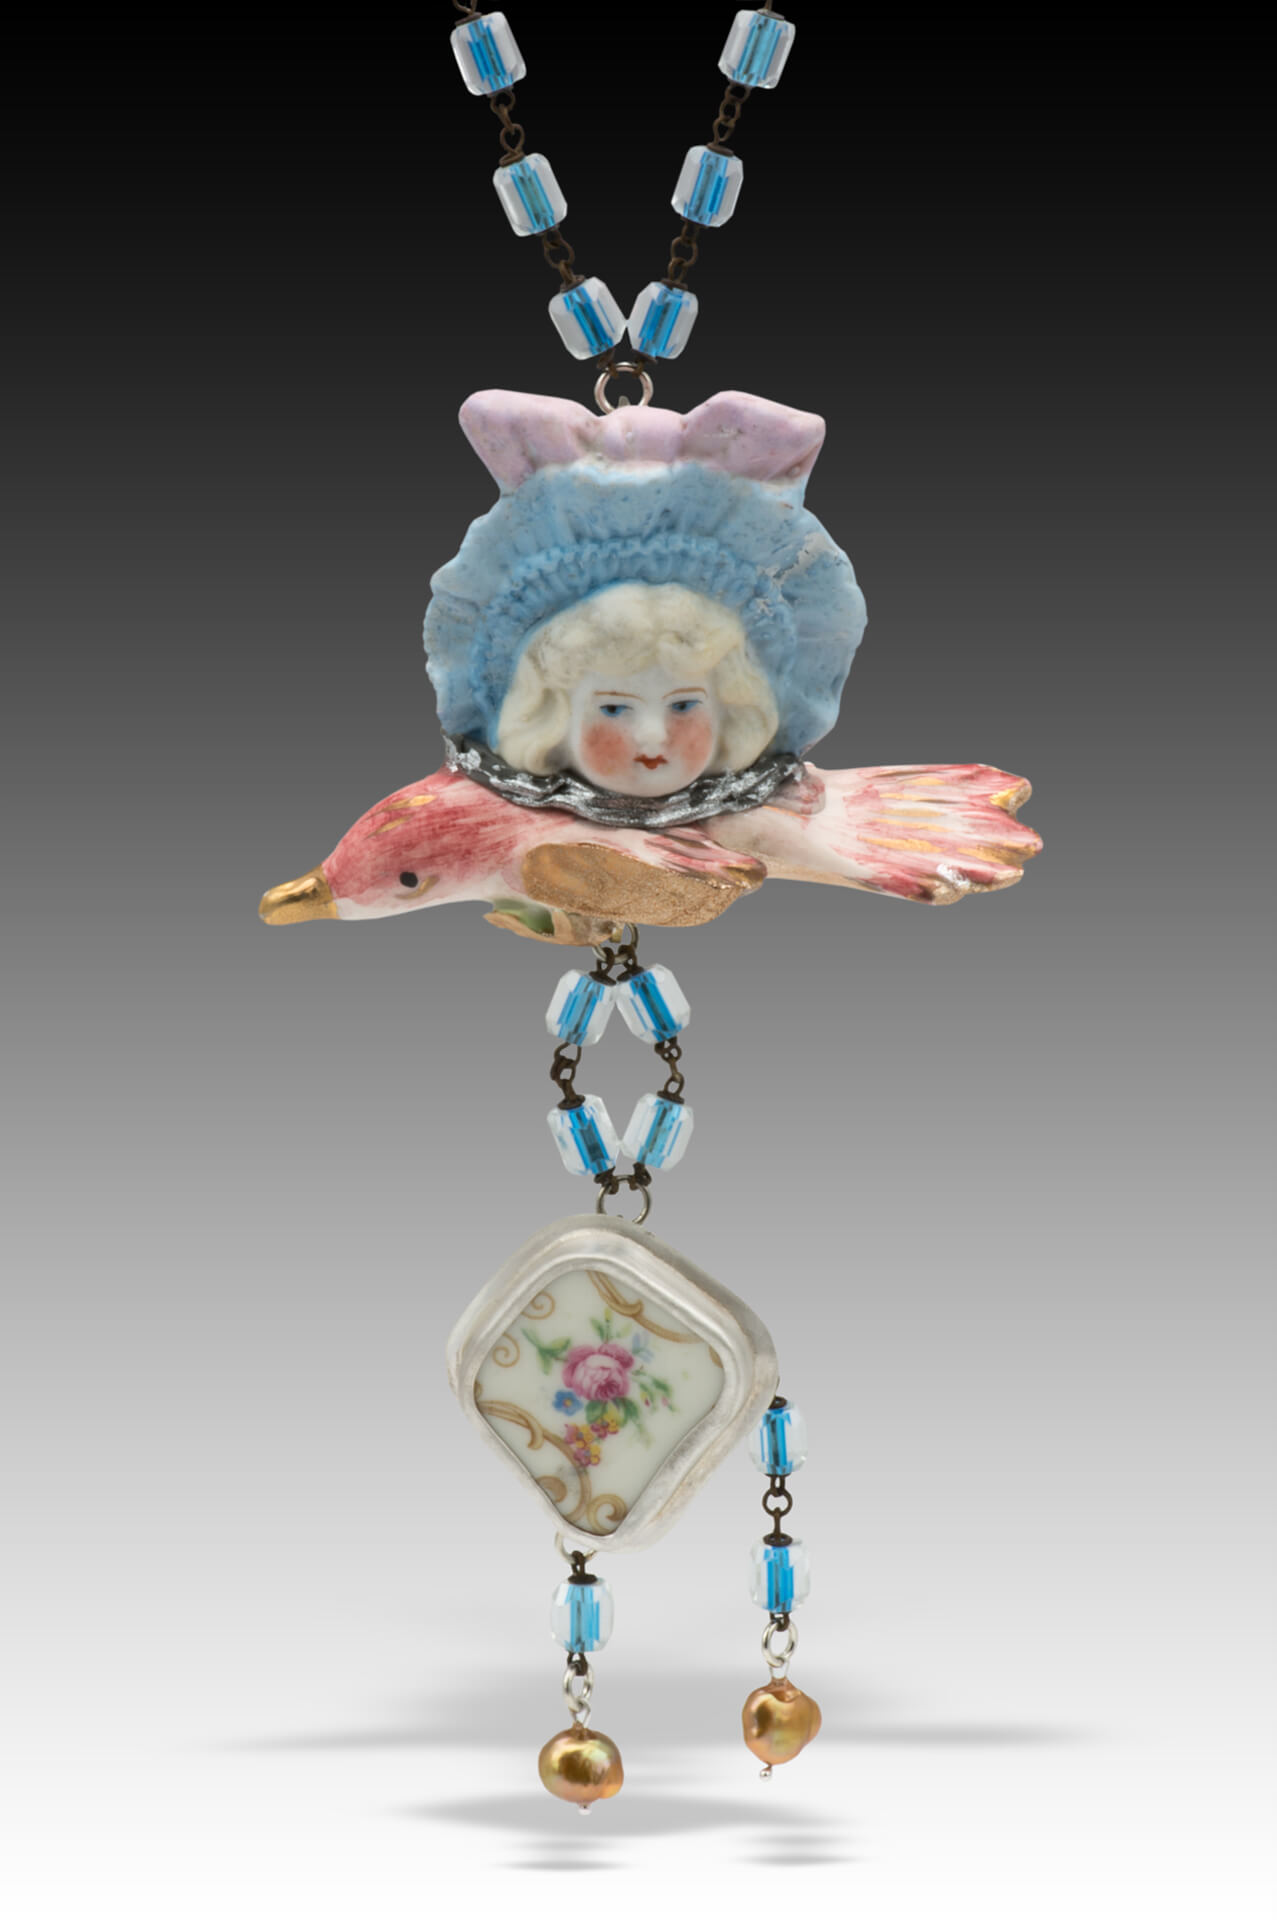 Hilary Greif Designs, Mixed Media dolls and antiques, Woodstock-New Paltz Art & Crafts Fair